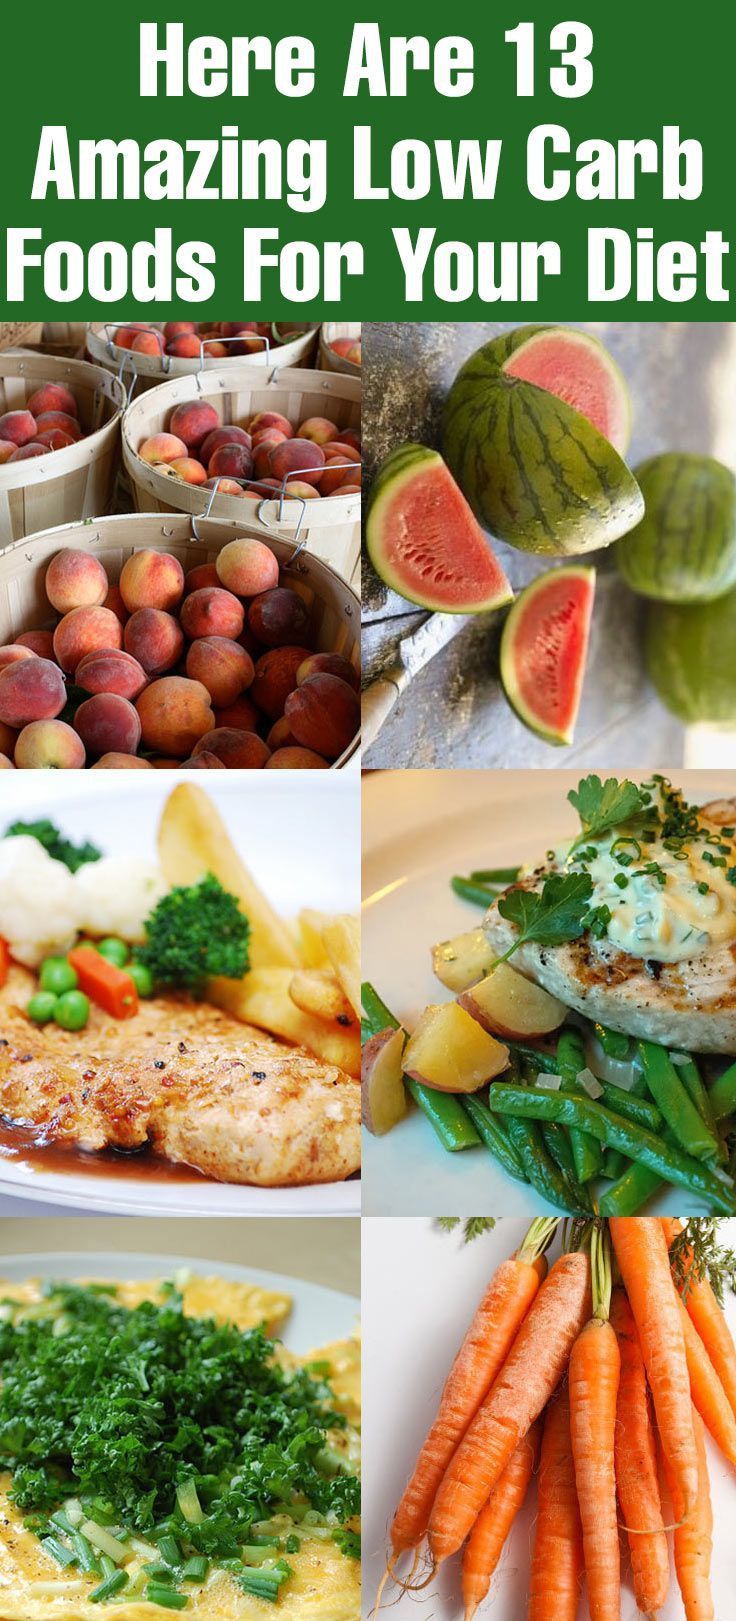 Carbohydrates Food List Low Carb Diets  49 best Low Carb images on Pinterest